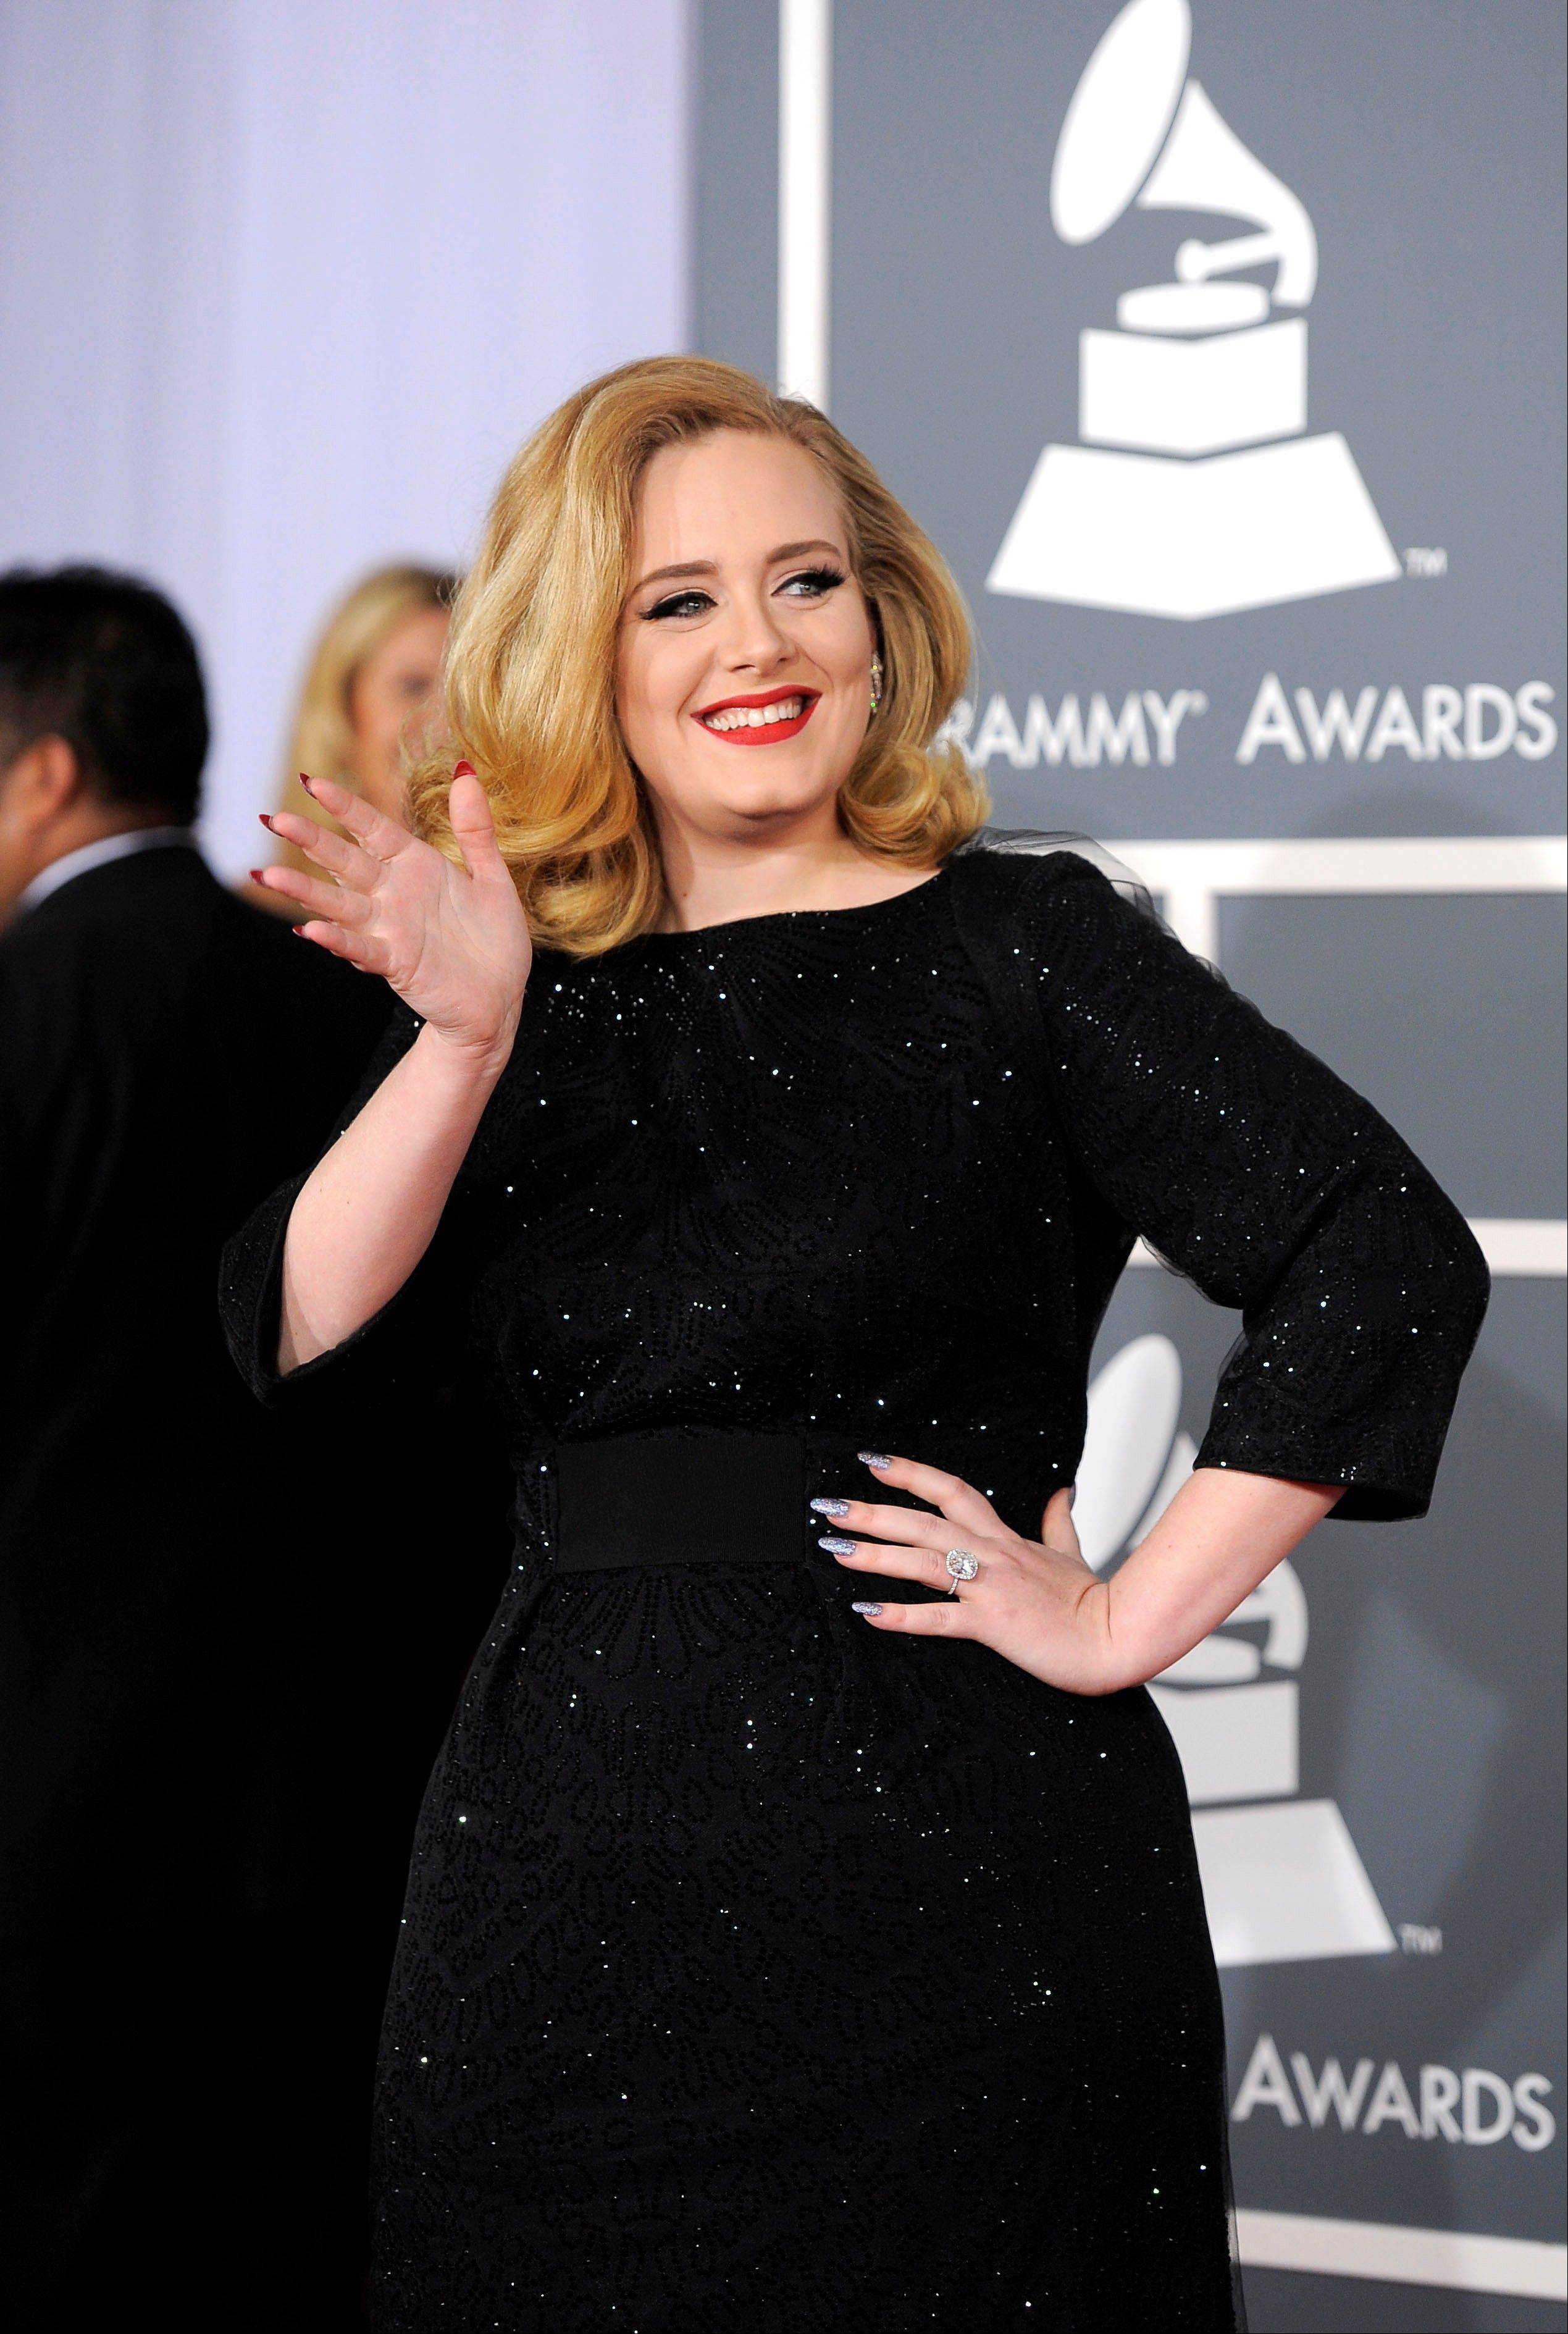 Adele arrives Sunday at the 54th annual Grammy Awards in Los Angeles.